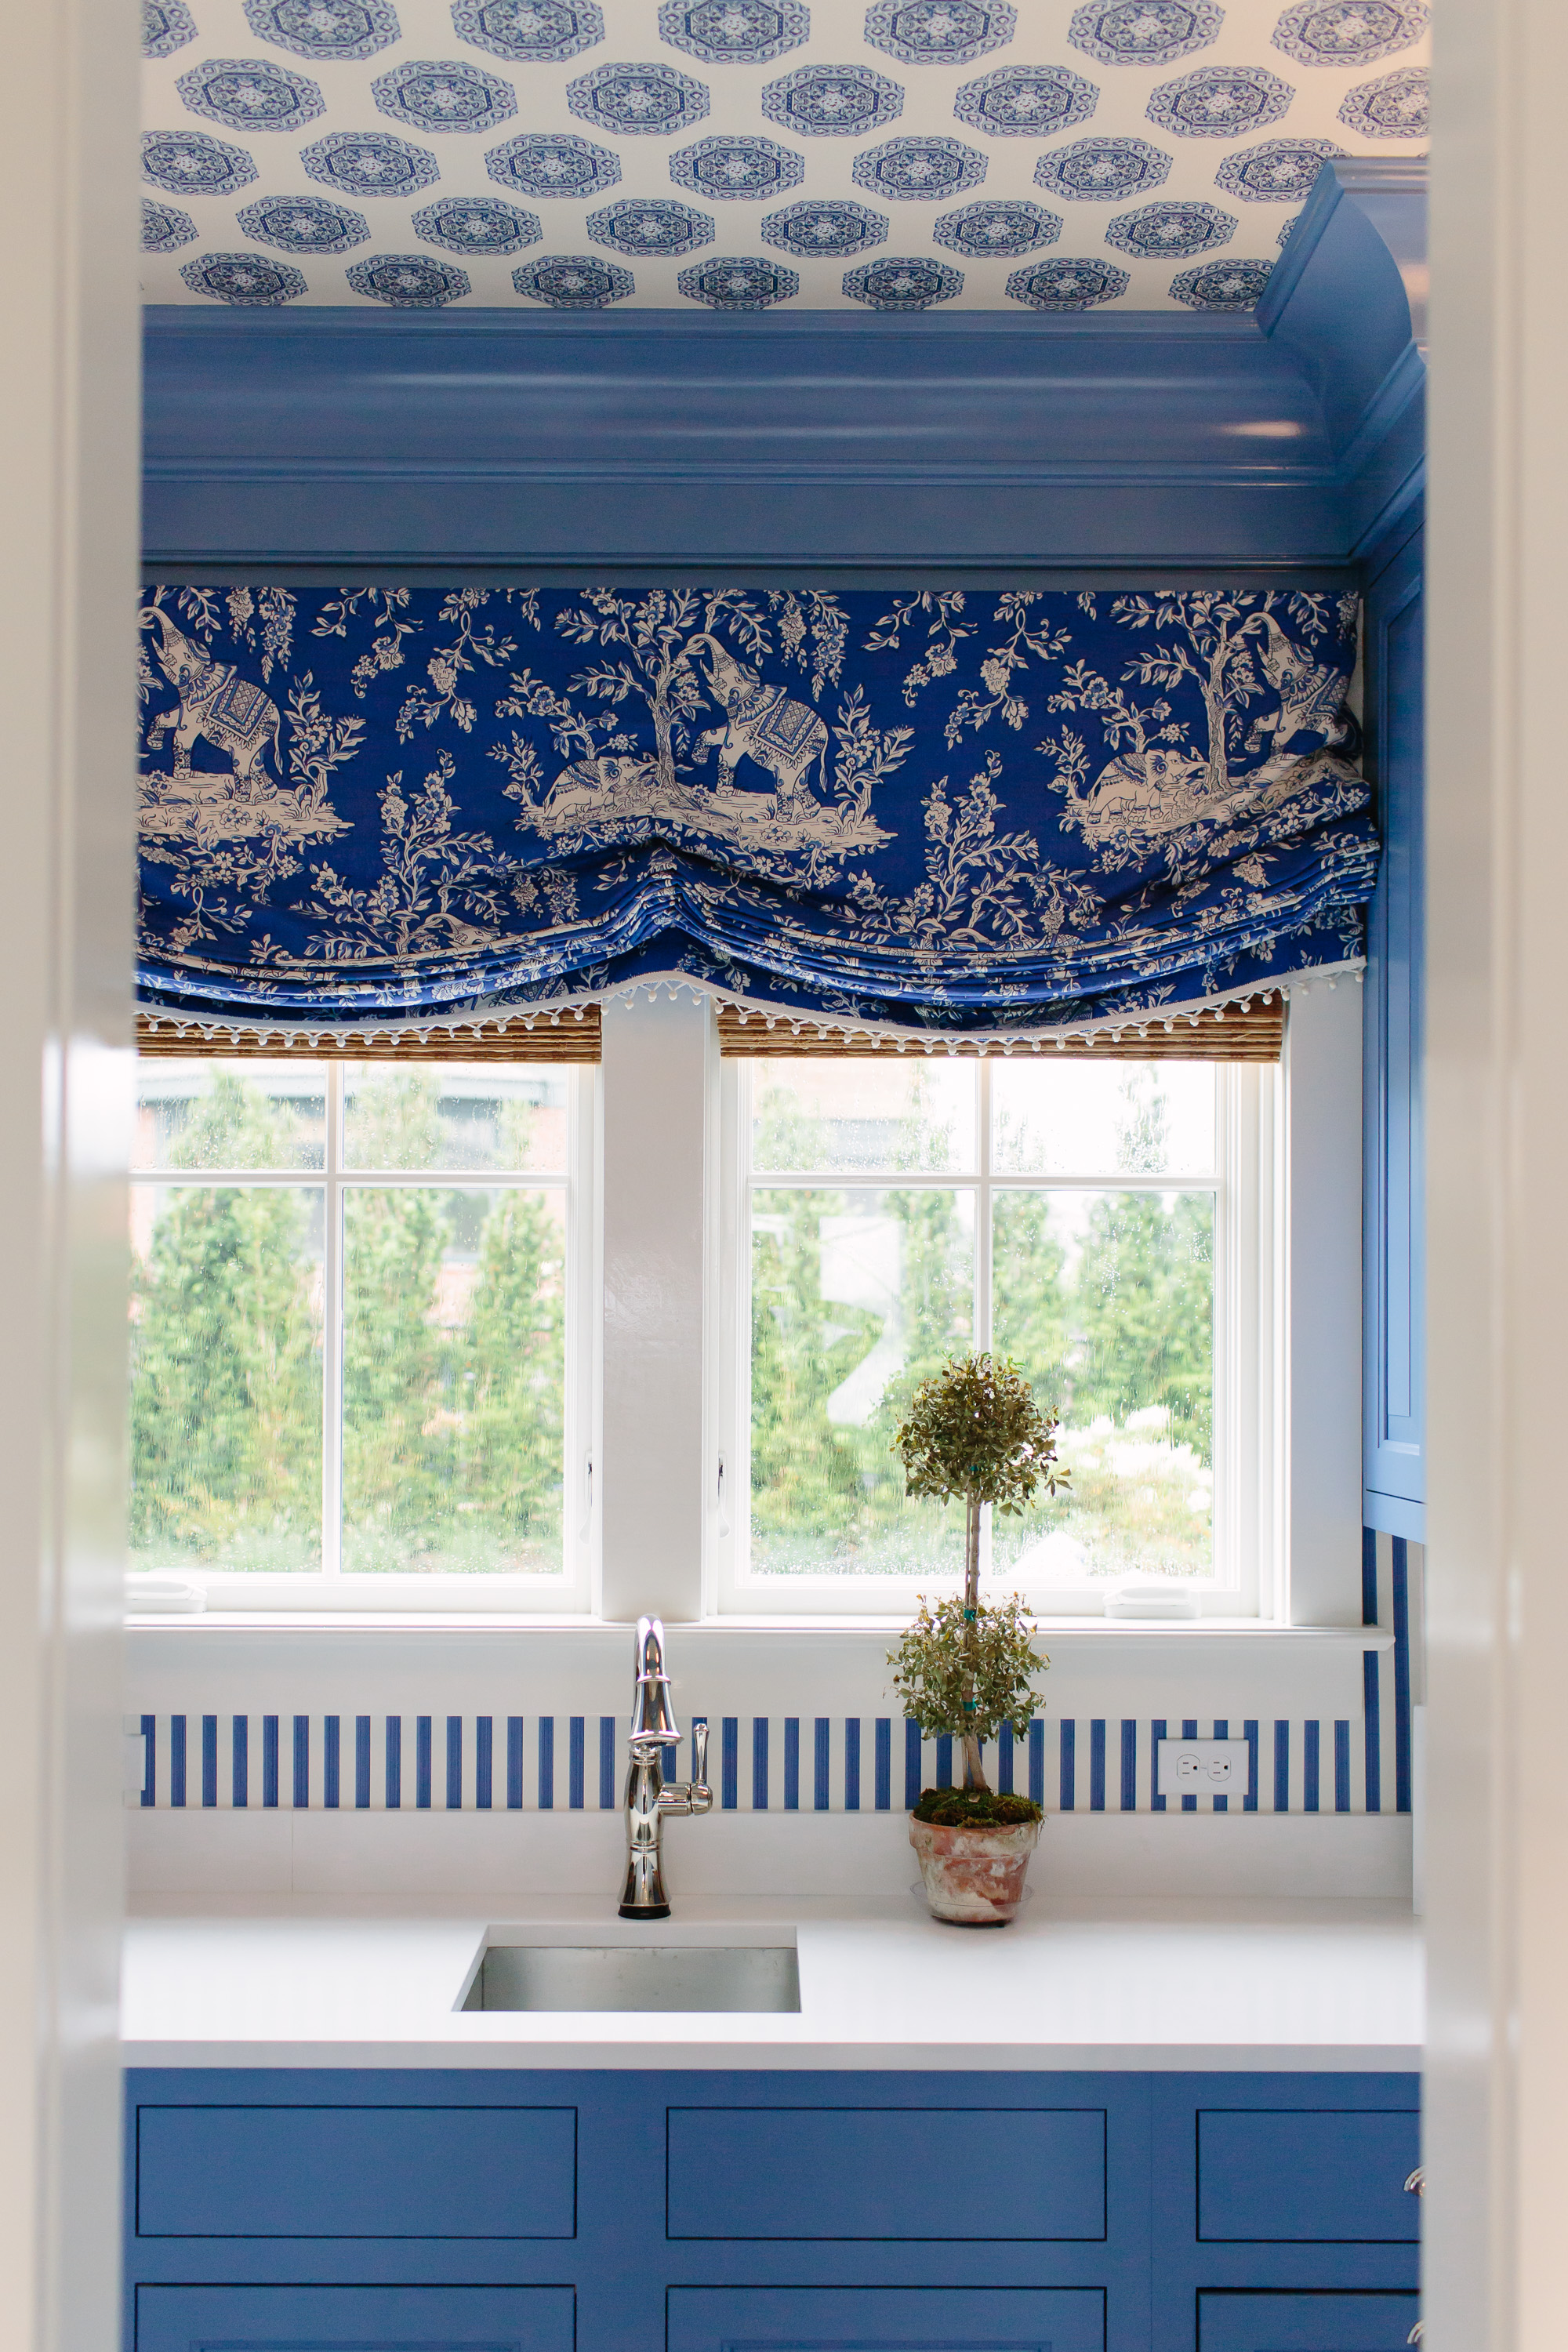 I Love The Wallpaper And The Papered Ceiling Is Such A Fun Surprise. It  Works So Well To Highlight The Trim.